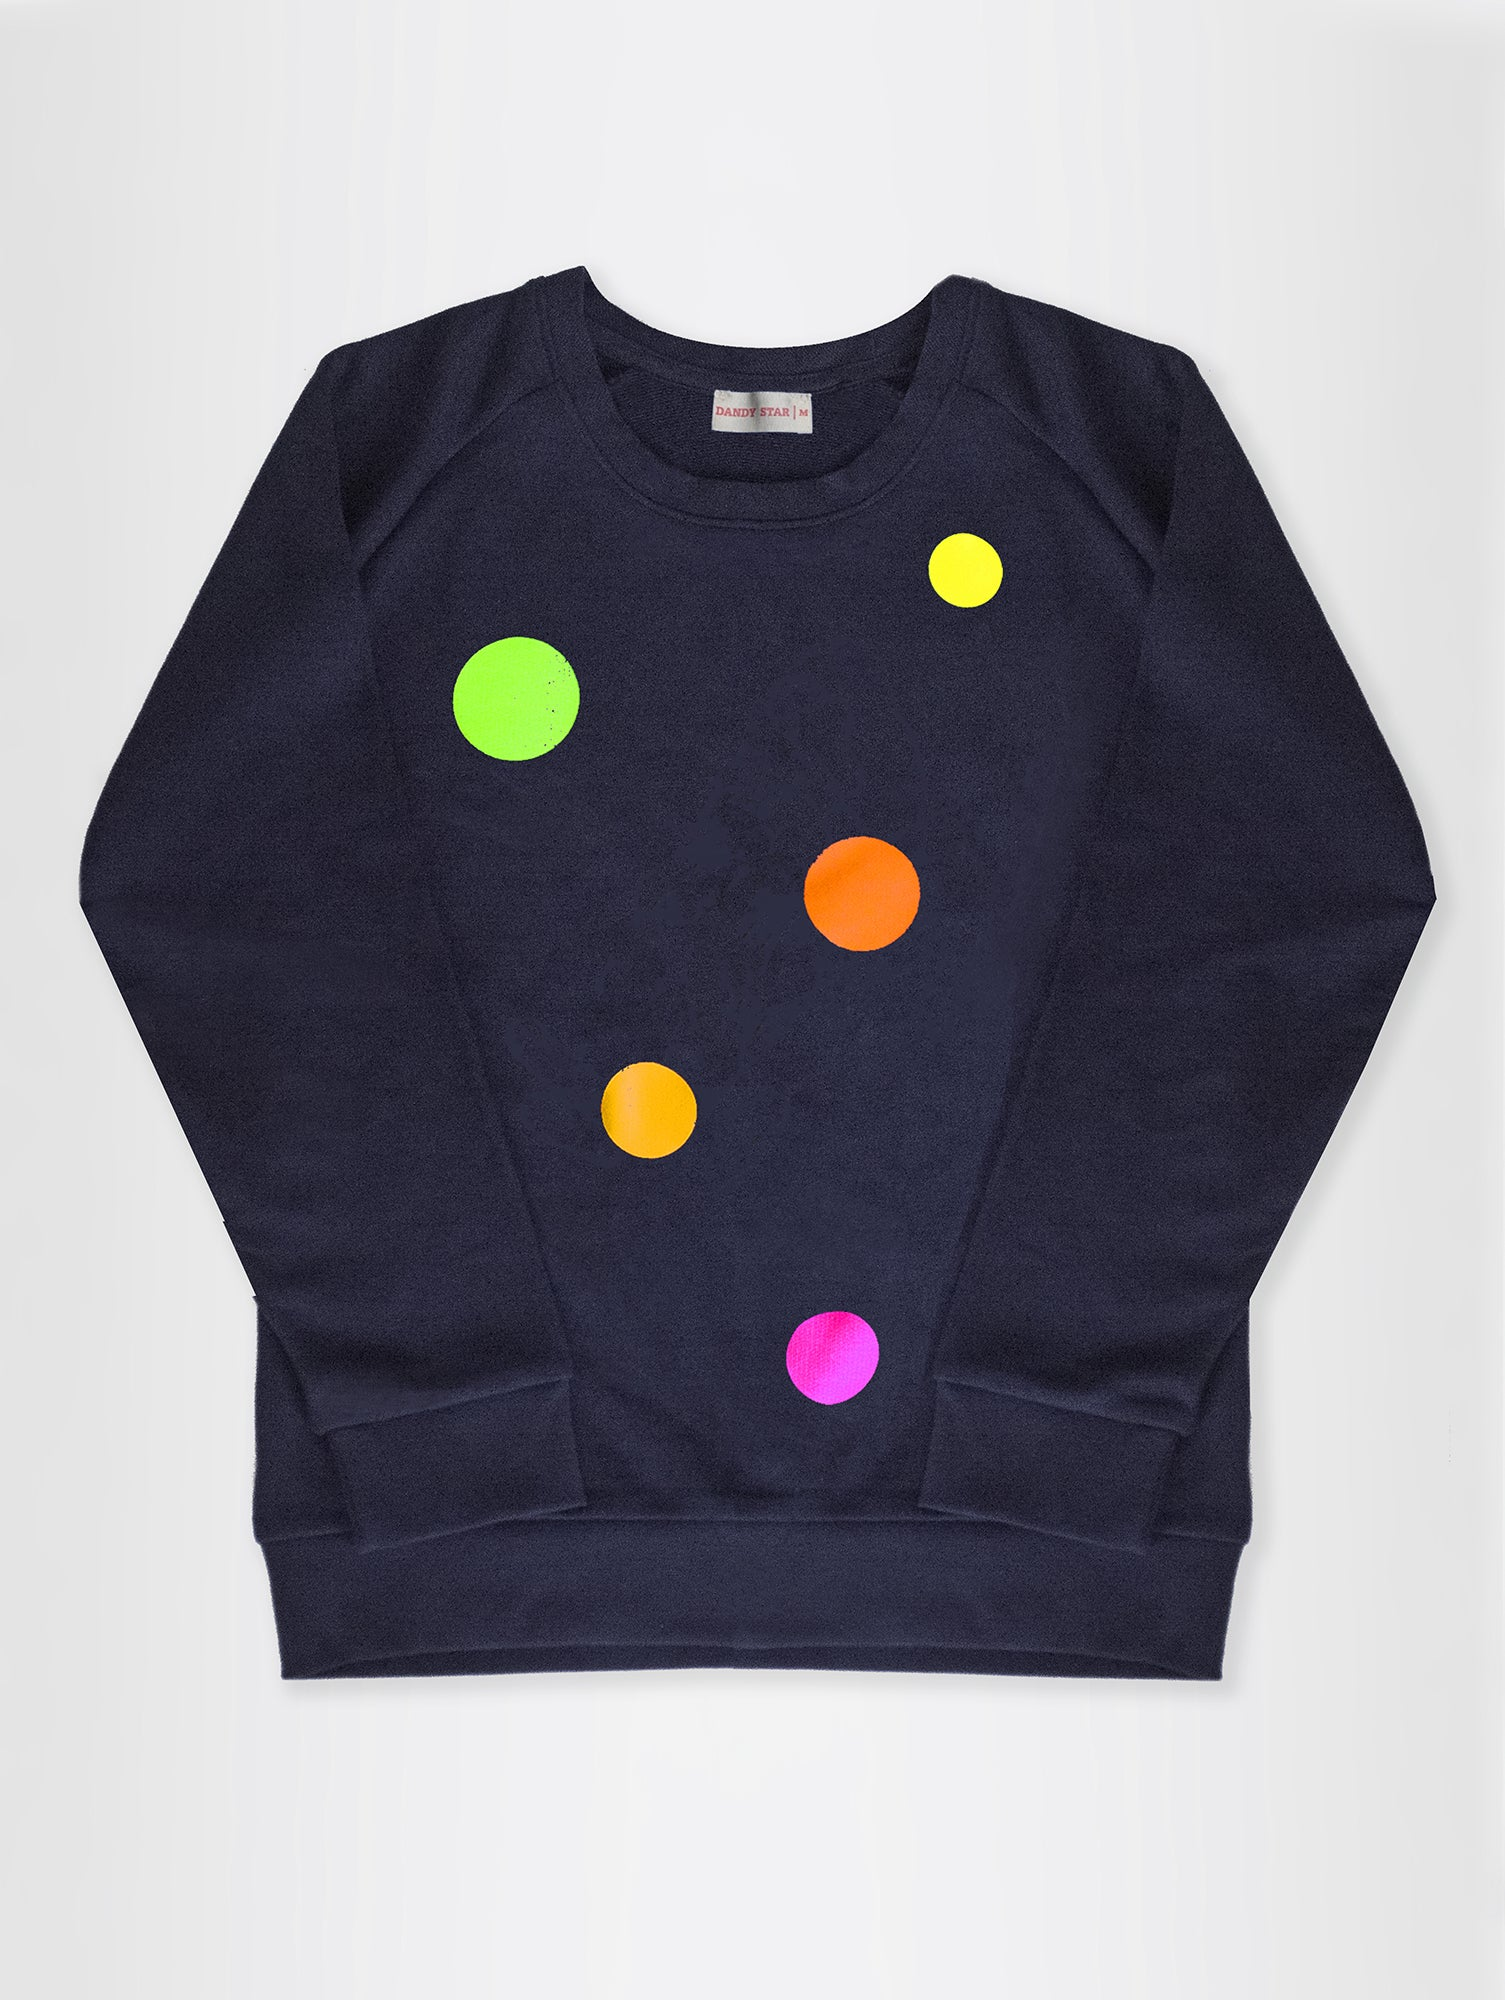 DANDY STAR NEO DOT SWEATSHIRT IN GREY MARL/NAVY FOR KIDS